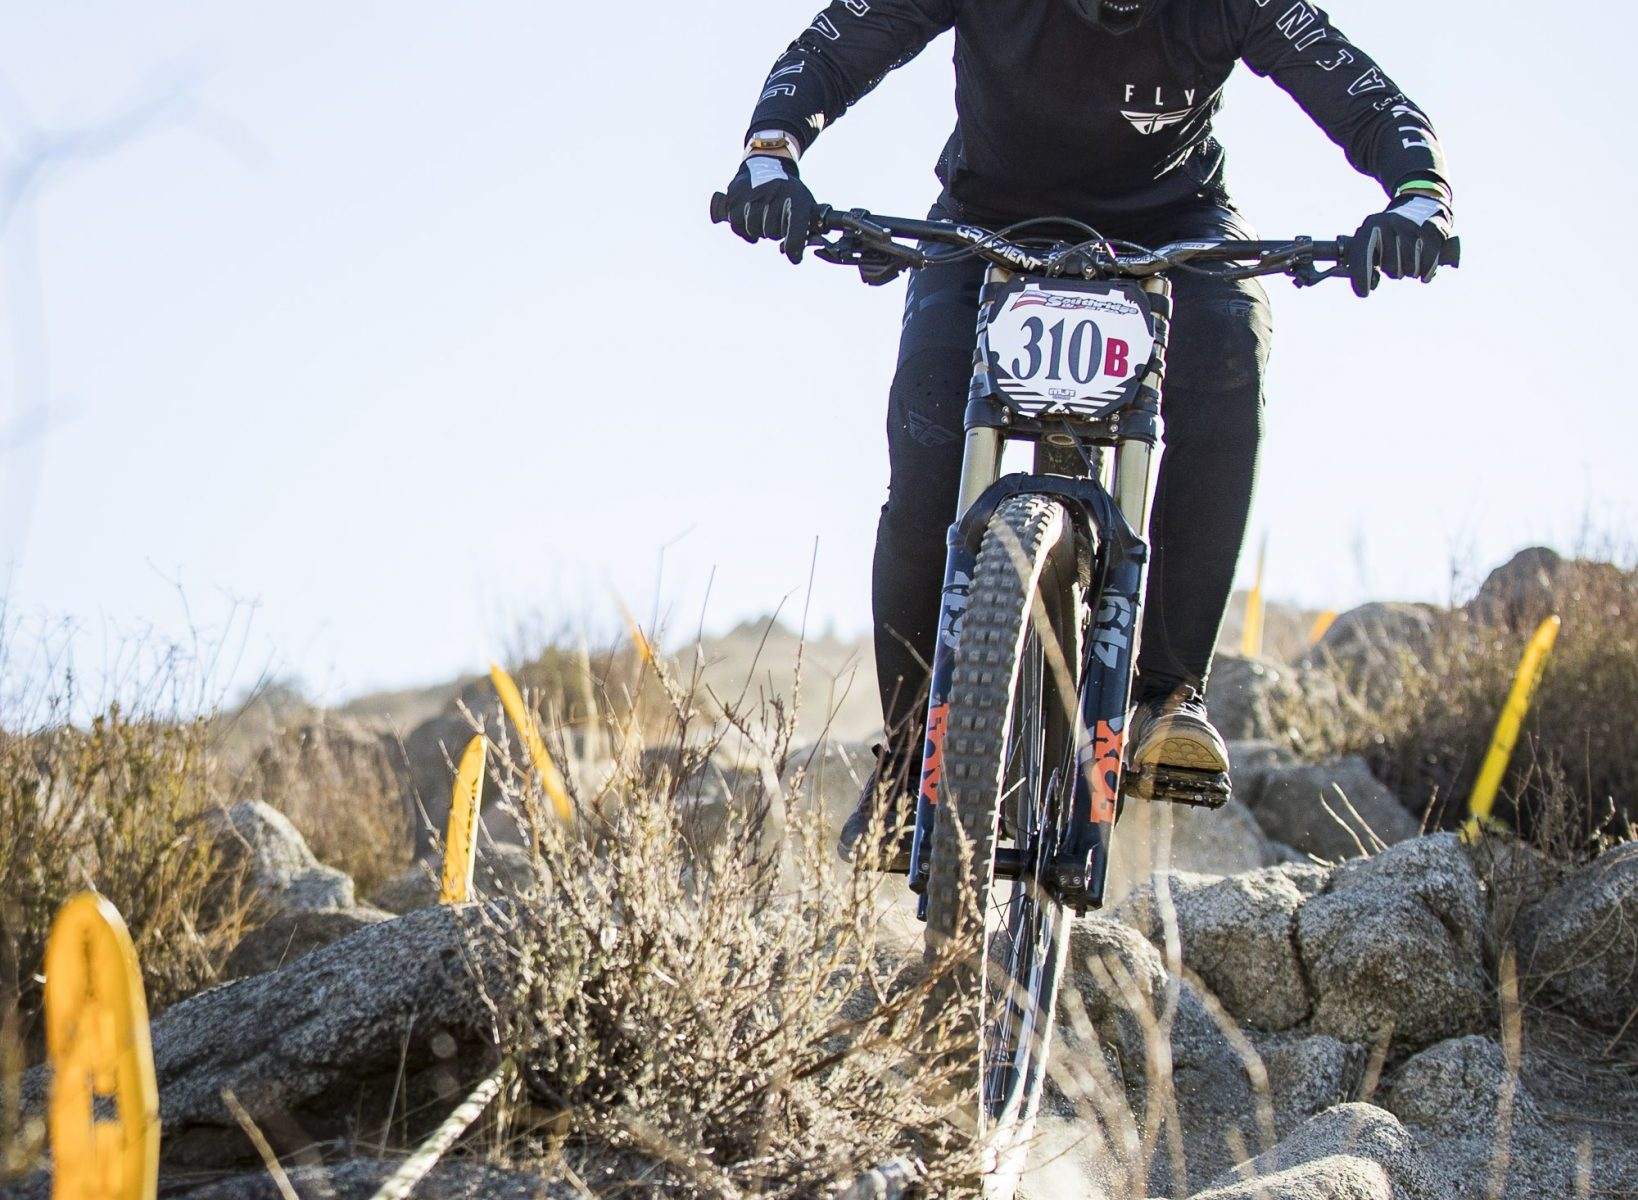 KHS Pro MTB team's Kailey Skelton on the dirt for her rae run at round one of the 2021 Southridge Winter series. Photo by: Chris Hausen